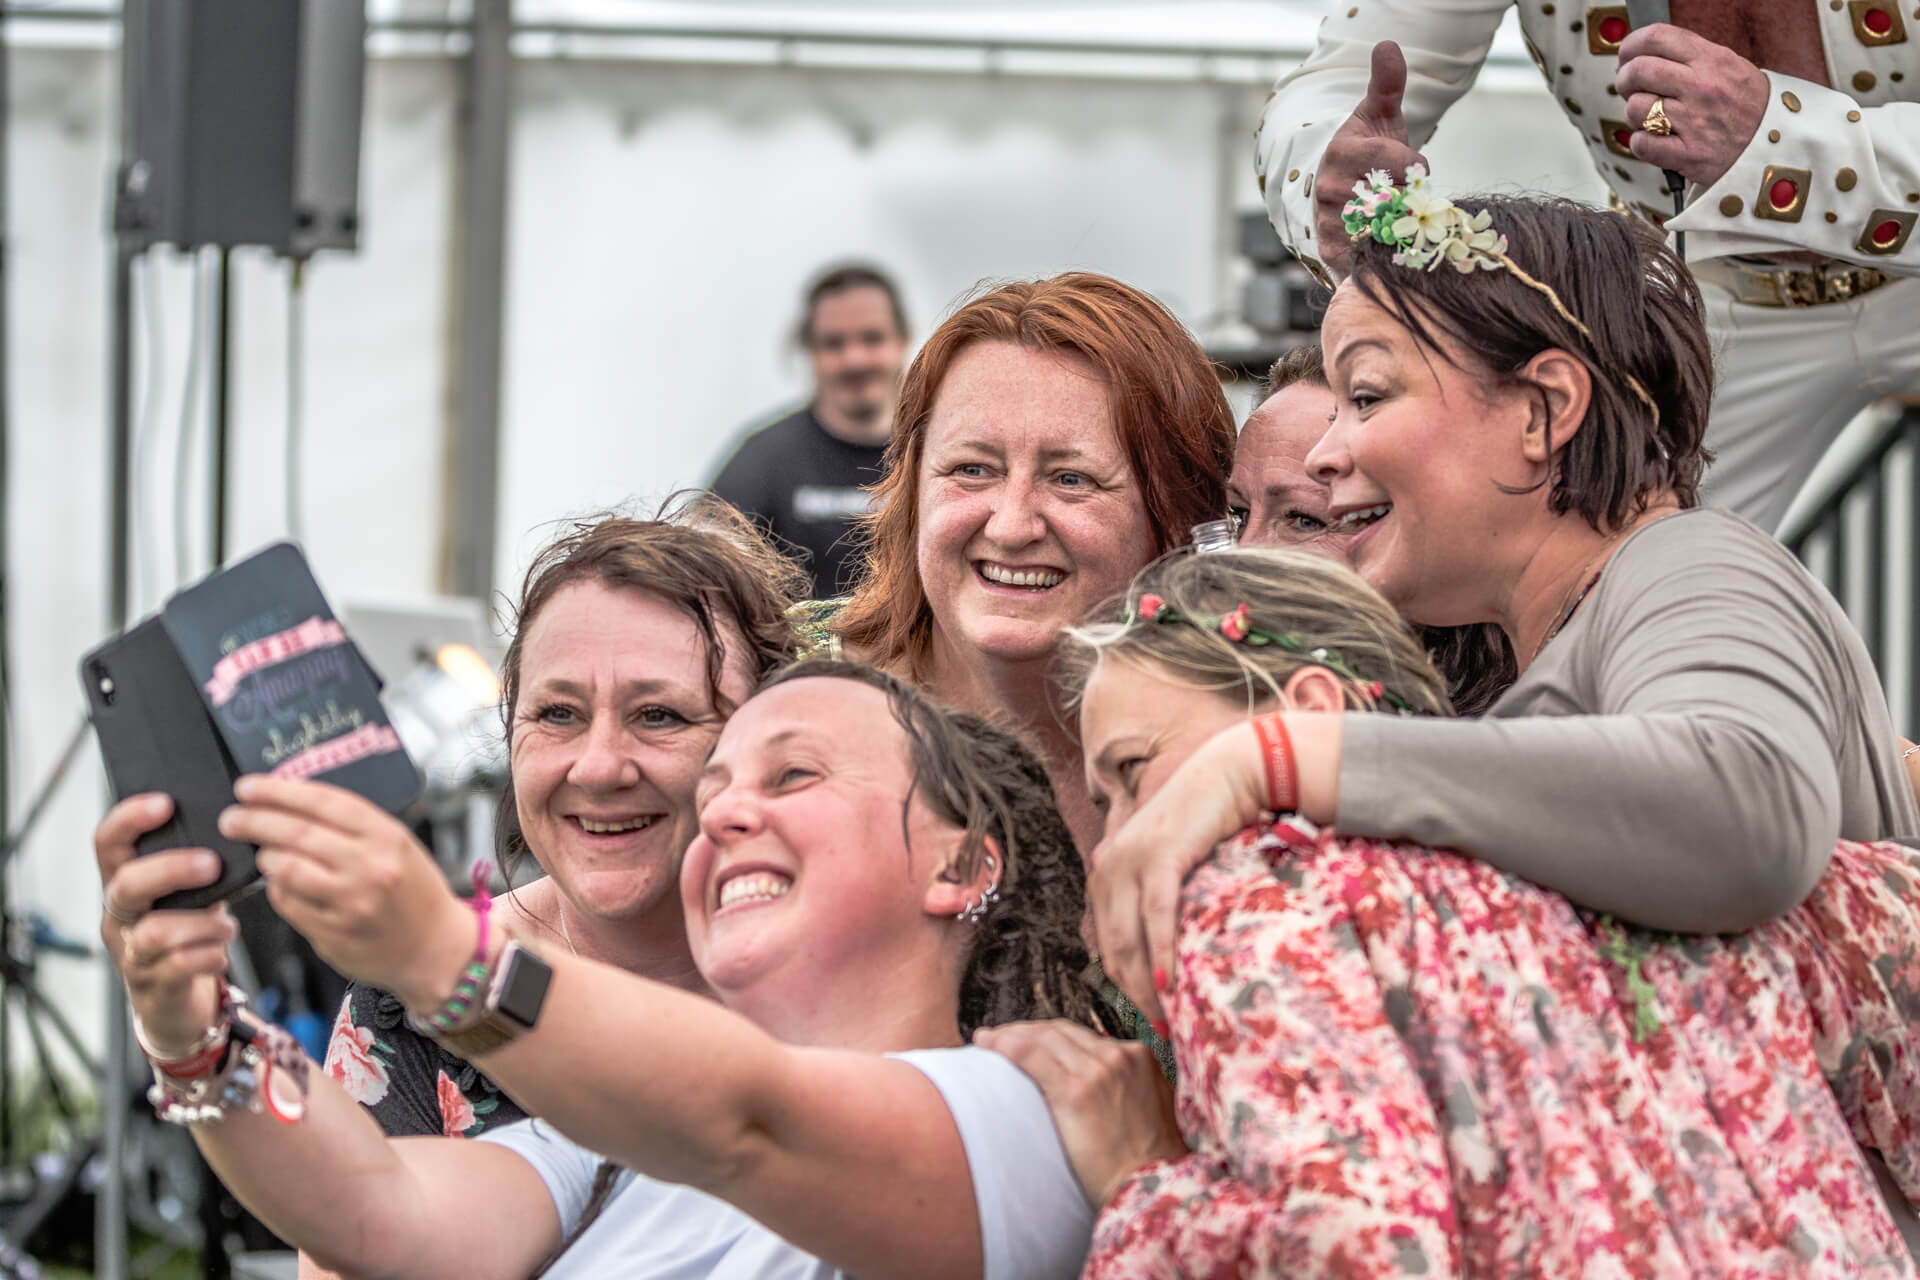 A colour image of a group of 6 female friends gather around and grin manically as they take a 'selfie' with a phone camera. They are standing at the edge of the front of the stage where an Elvis impersonator was performing. He can just be seen knelt down at the back of the group giving a 'thumbs up'.